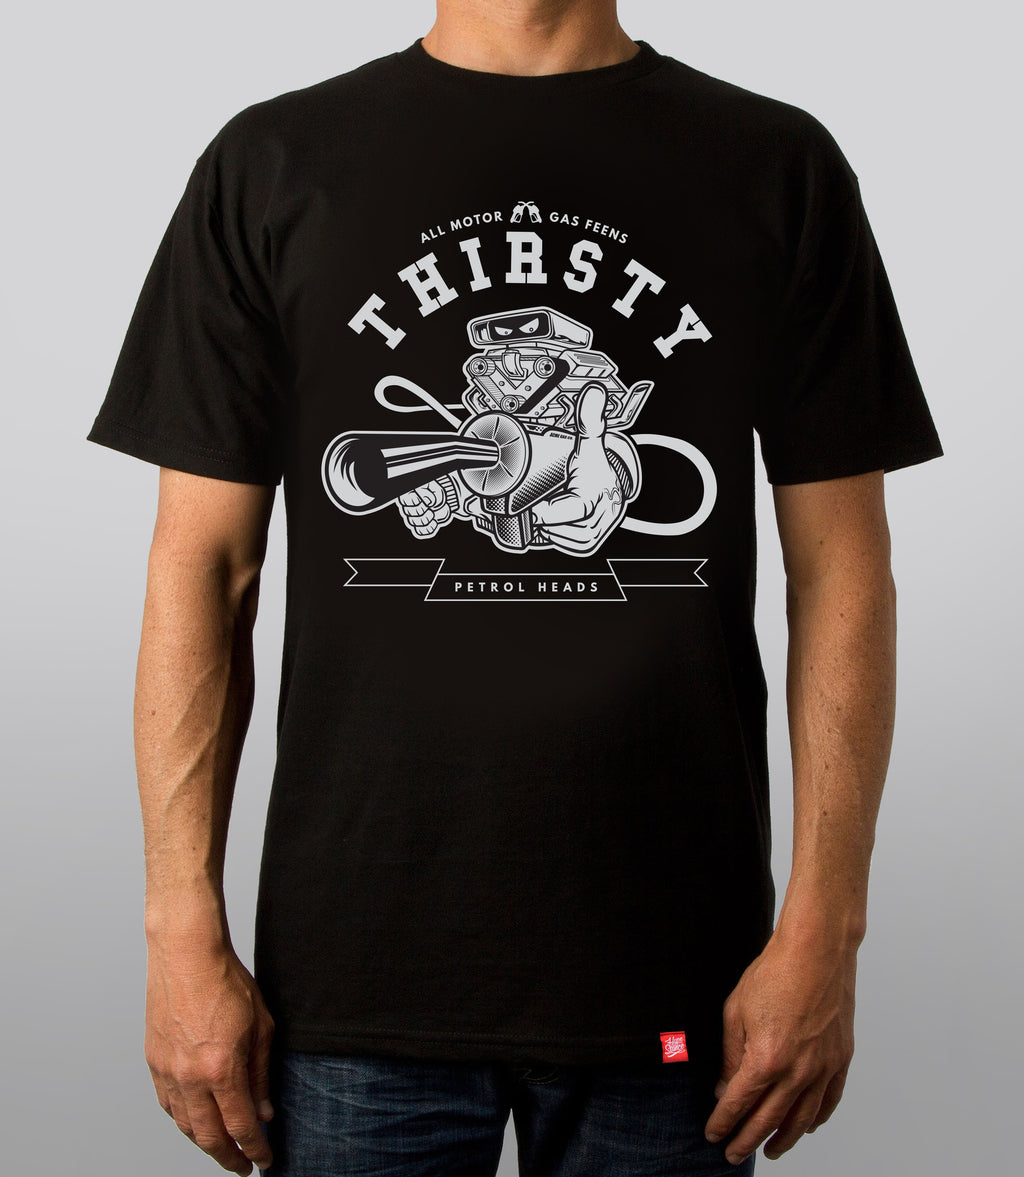 Thirsty All Motor Graphic Tee - Hypestance, Car Tshirts